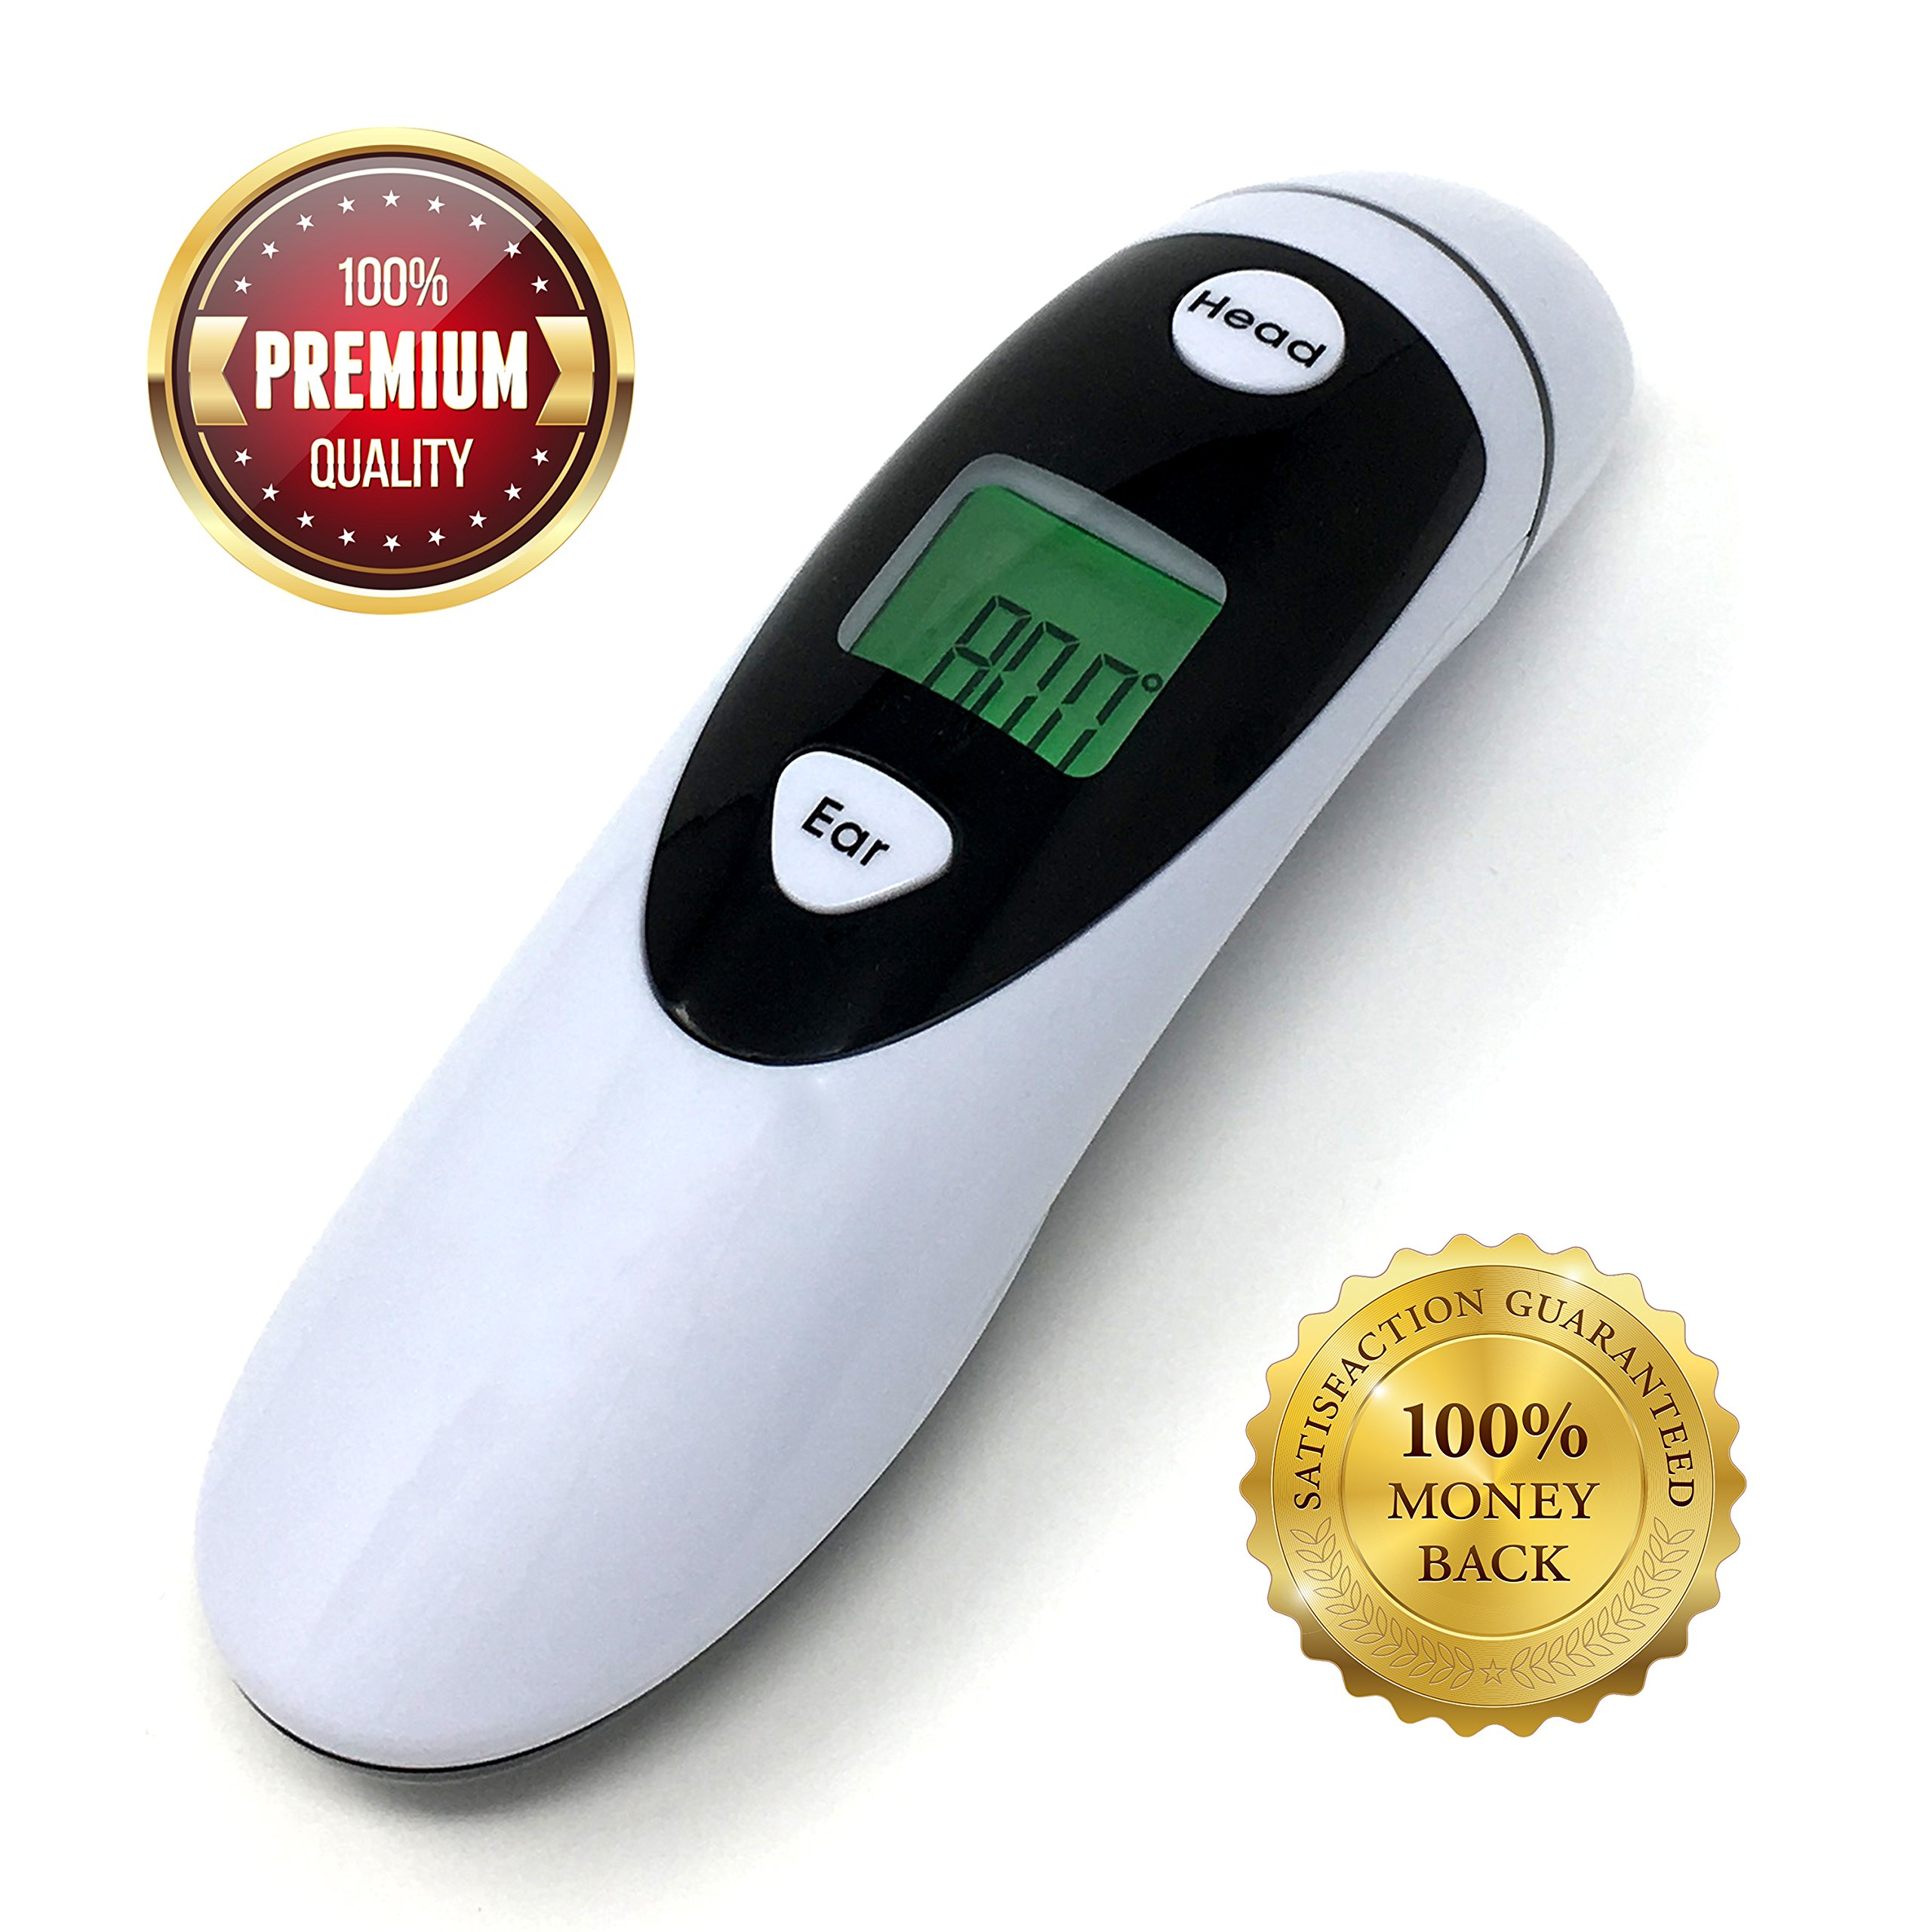 Champion IR - Medical Ear Thermometer With Forehead Function - Infared Technology & LCD Screen For Improved Accuracy by Champion IR (Image #8)